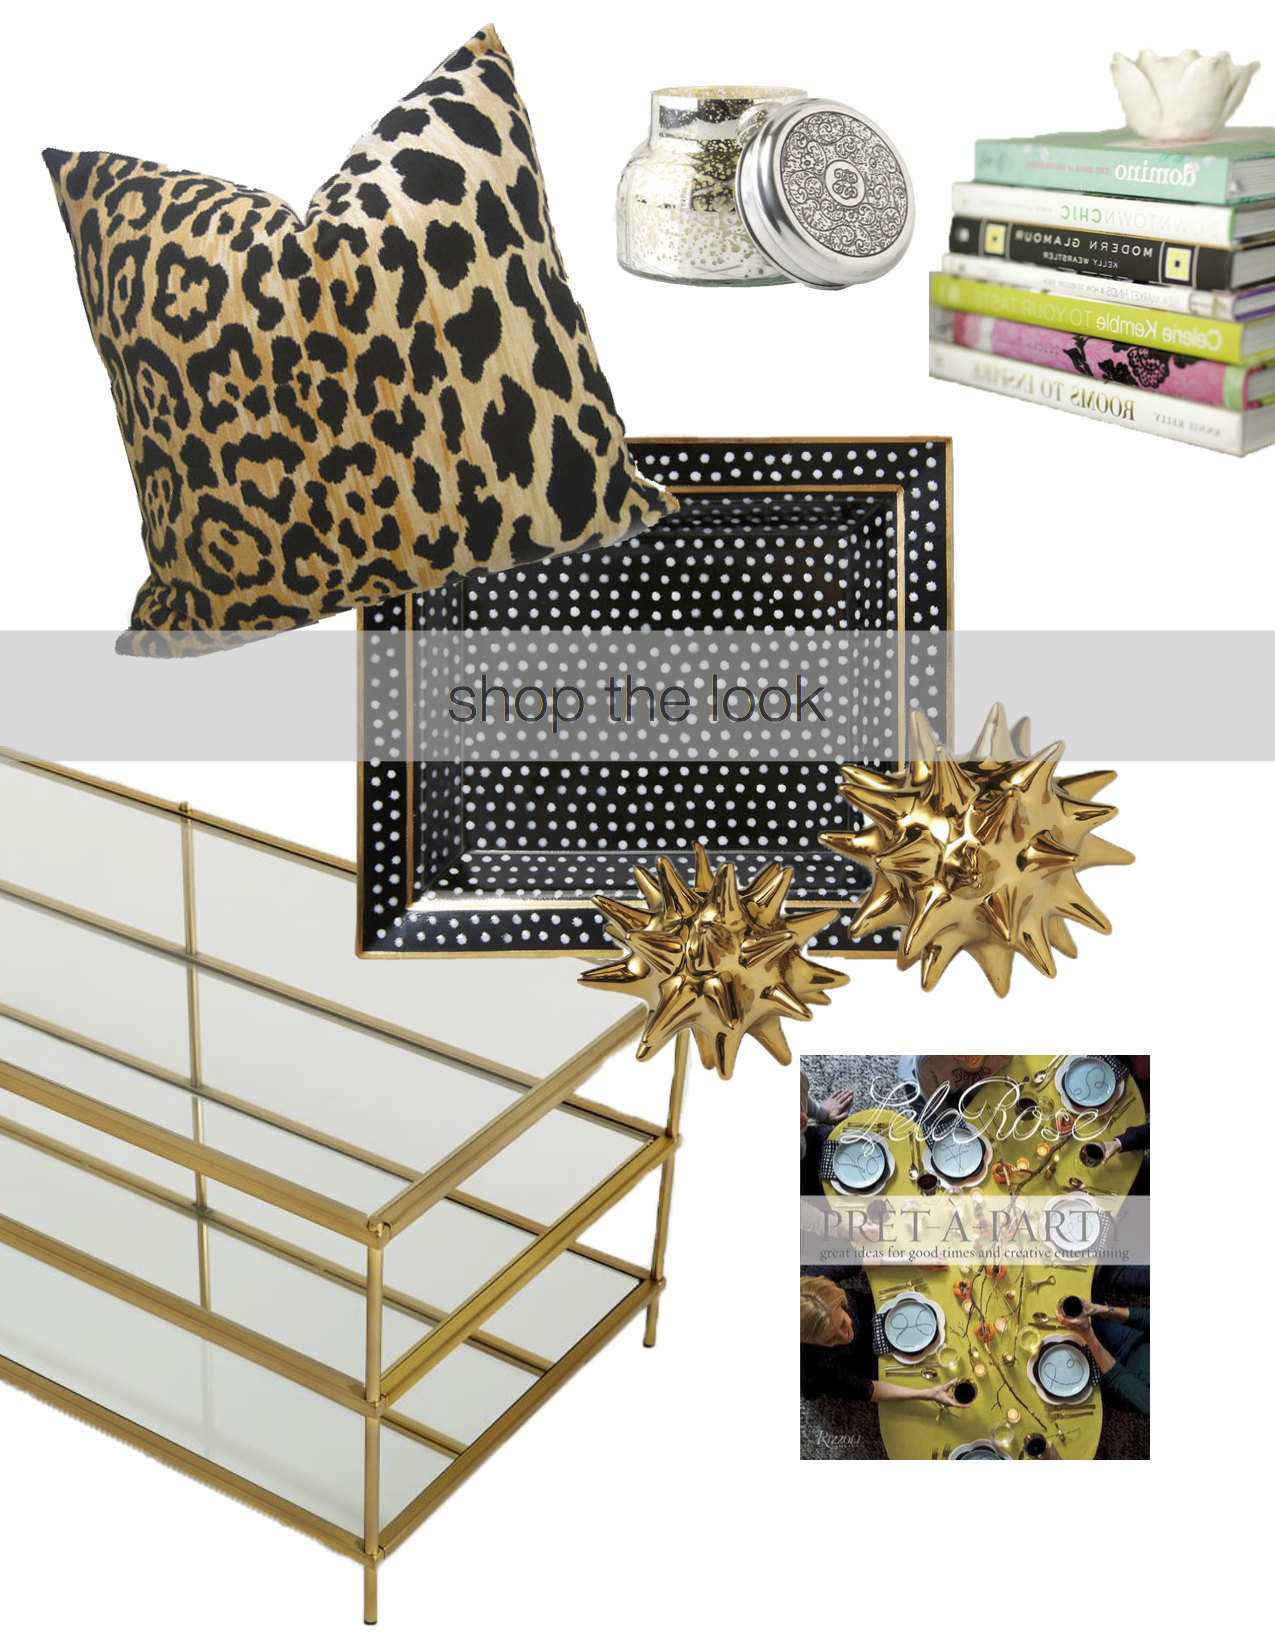 Keep your coffee table simple with black, white, and gold or silver accents to accentuate with your spotted pillow. White and black coordinate with any color palette and remain timeless. To add dimension and instant color pop, show off your lifestyle books or magazines and top off with a printed toss-all tray for keys or candies.